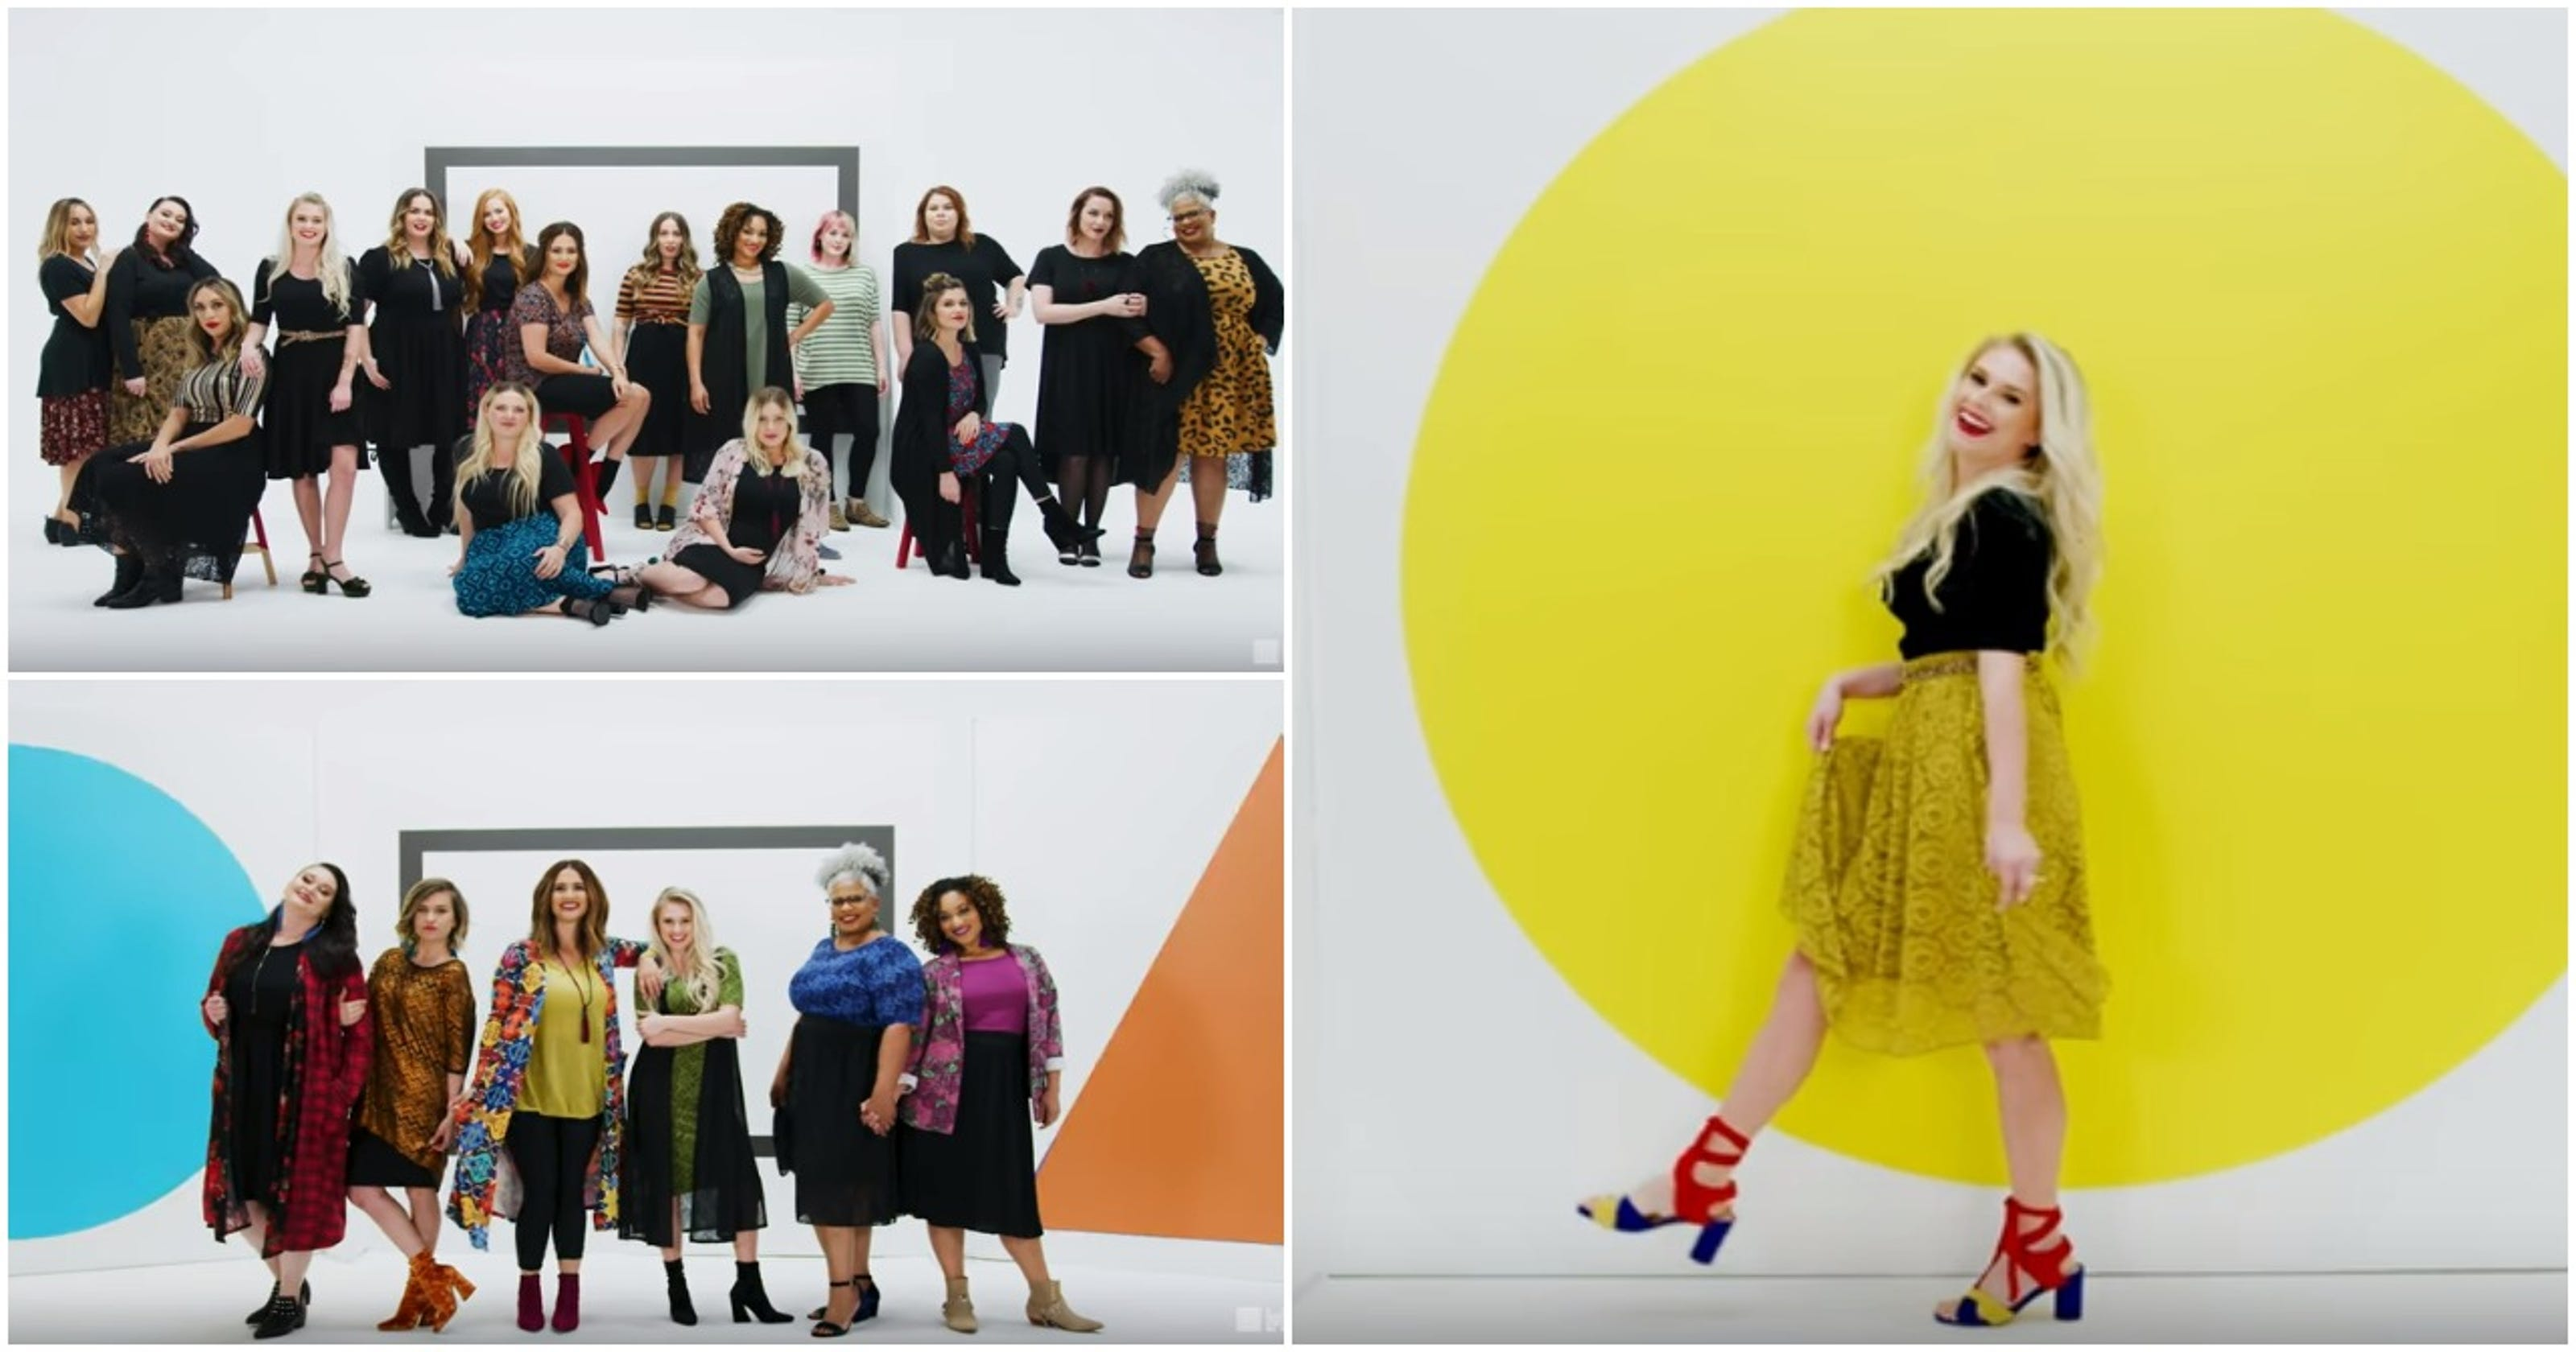 173f78a4a22b LuLaRoe teases 'Noir 2' collection to mix of excitement, trepidation